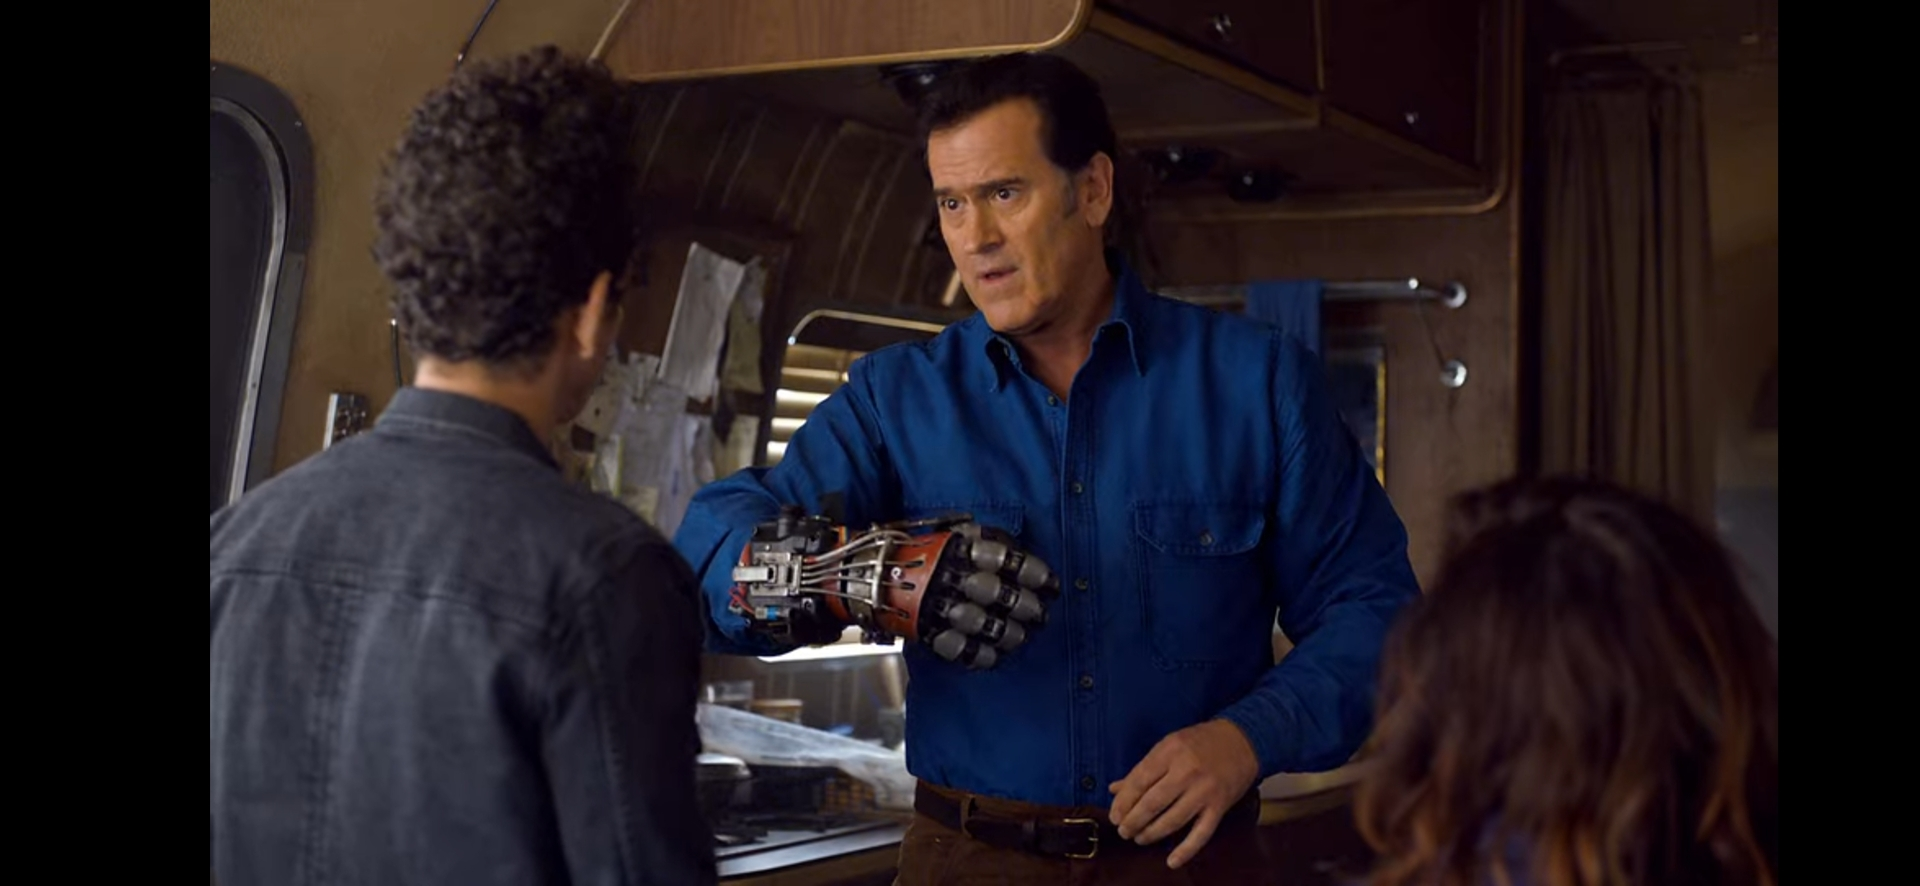 ASH VS EVIL DEAD (TV SERIES) - Ash's (Bruce Campbell) Mechanical Hand - Image 12 of 12